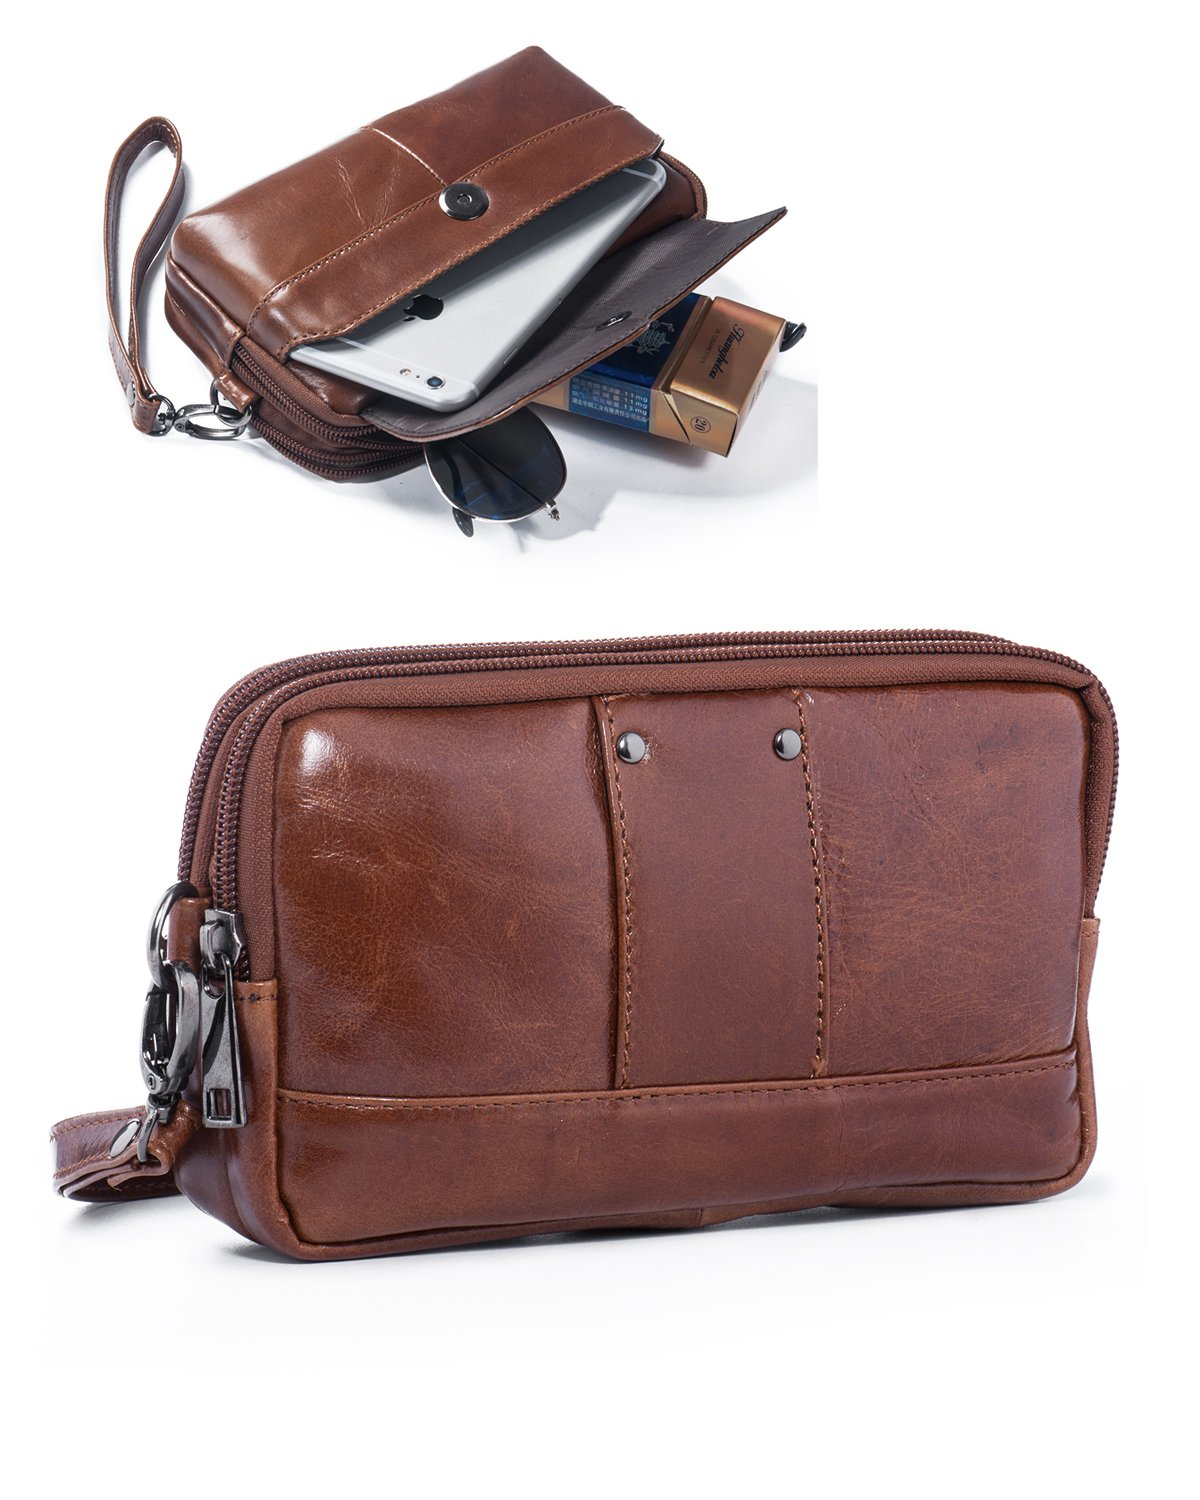 Hwin Phone Purse Horizontal Clutch Bag Men Handbag Waist Bag 7 Plus 8 Plus Holster Case Pouch Belt Case Phone Holster Leather Wallet Purse Carrying Case with Loop LG V20 S8 Plus S9 Plus+Keychain-Brown